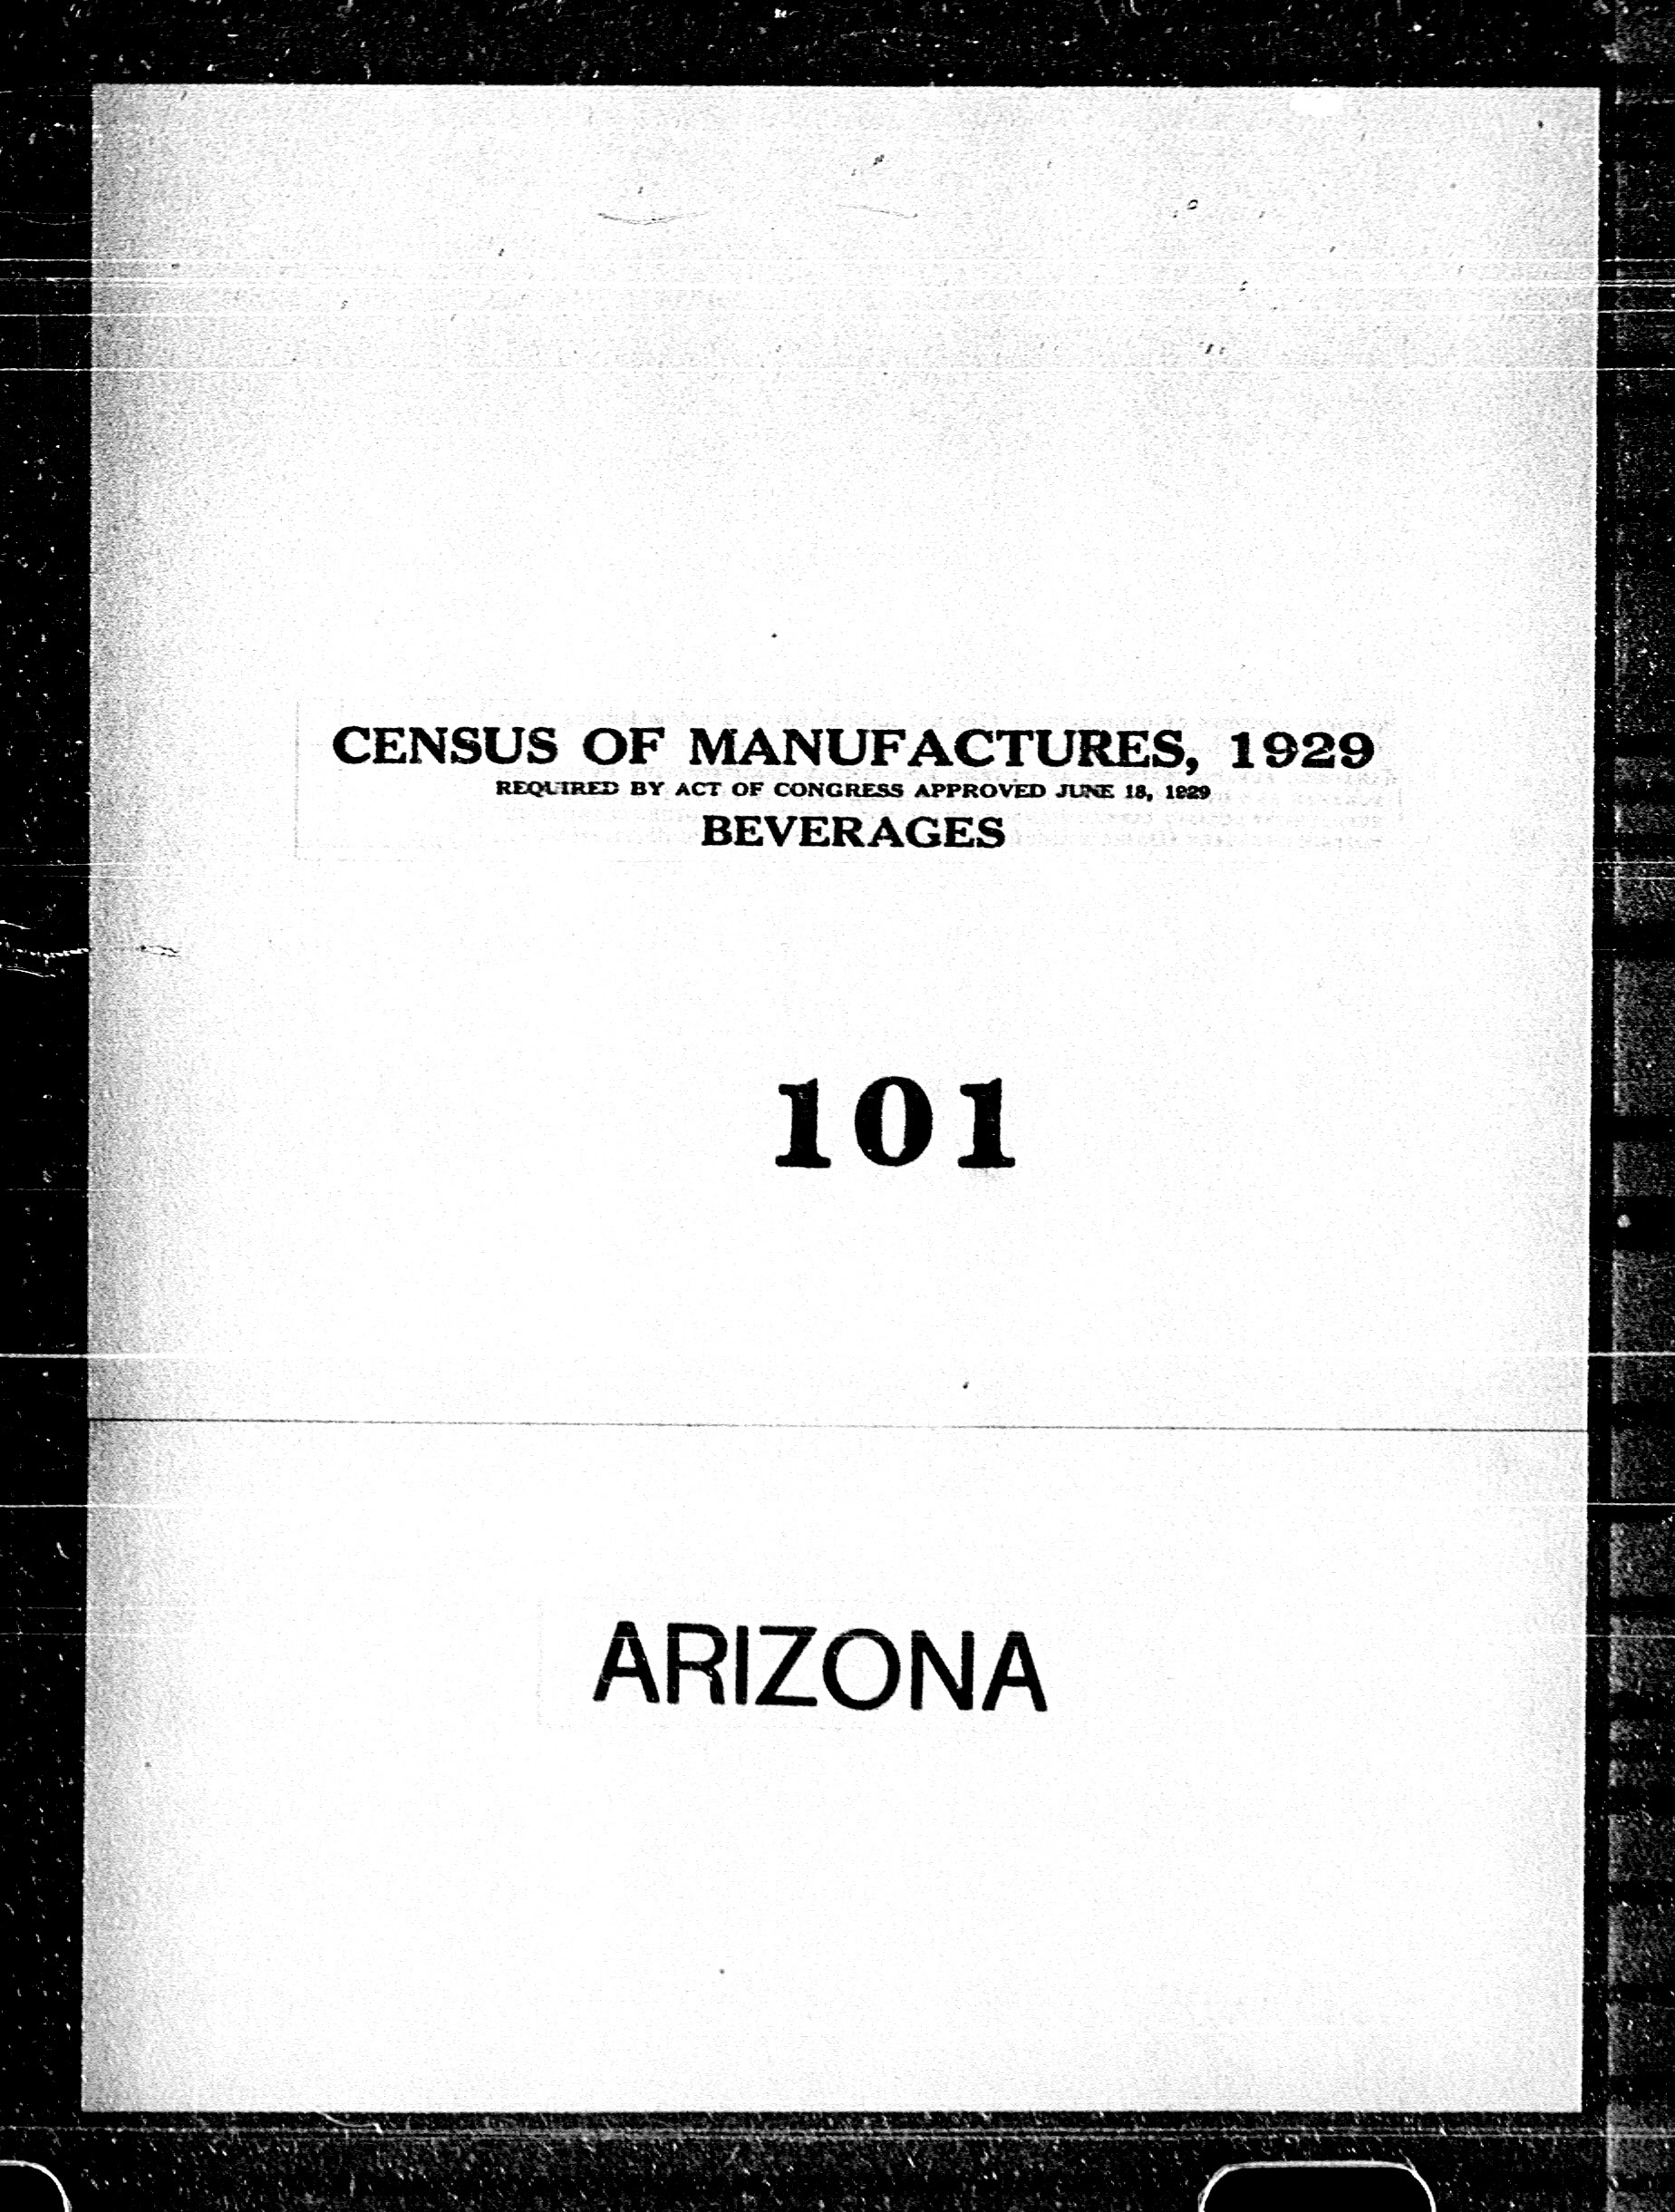 Arizona: Industry No. 101 - Beverages